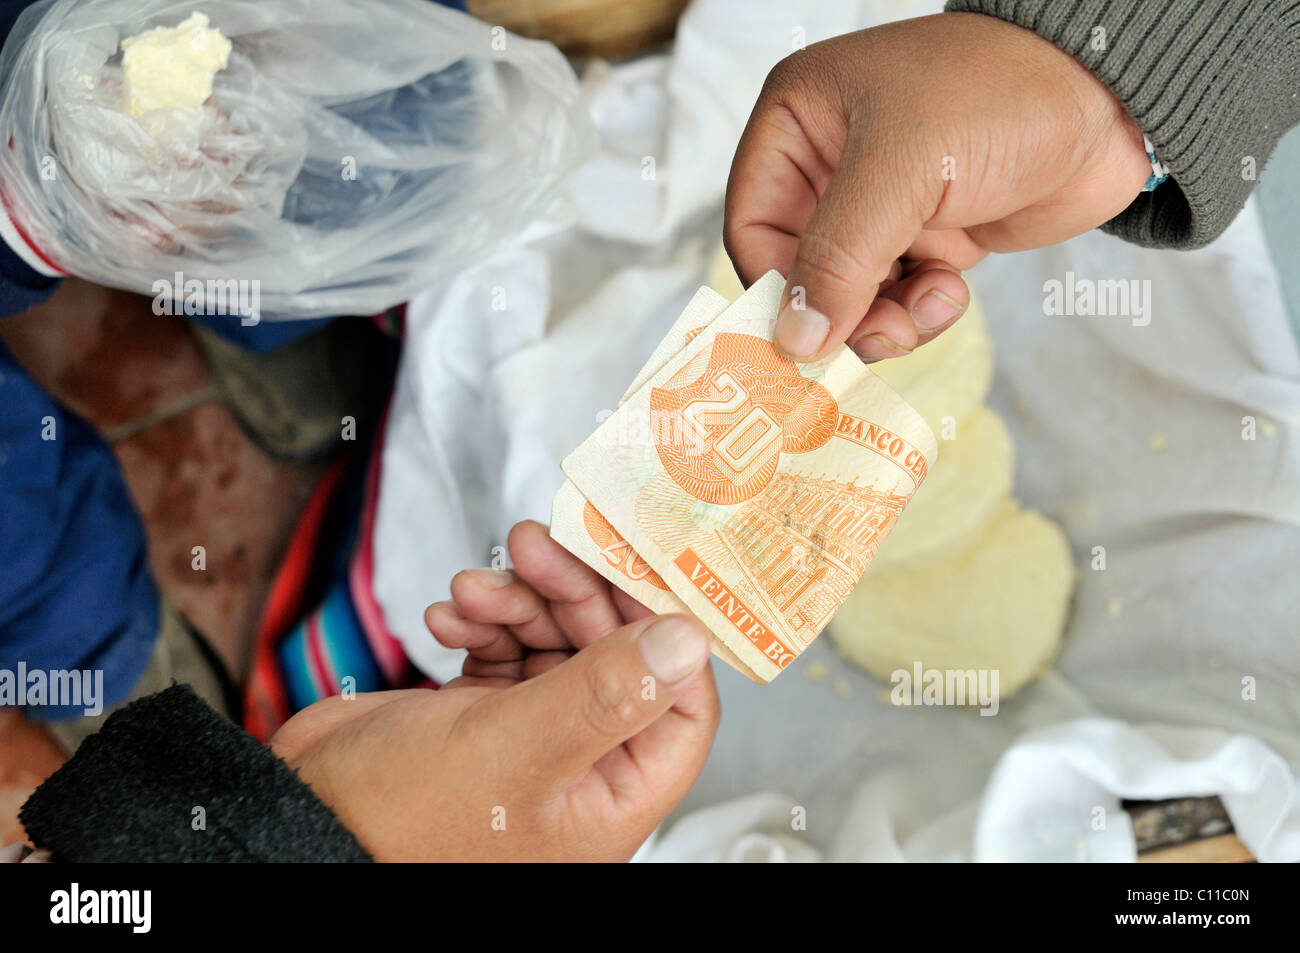 Payment process with a bill, 20 bolivianos, sale of fresh cheese, Bolivia, South America - Stock Image